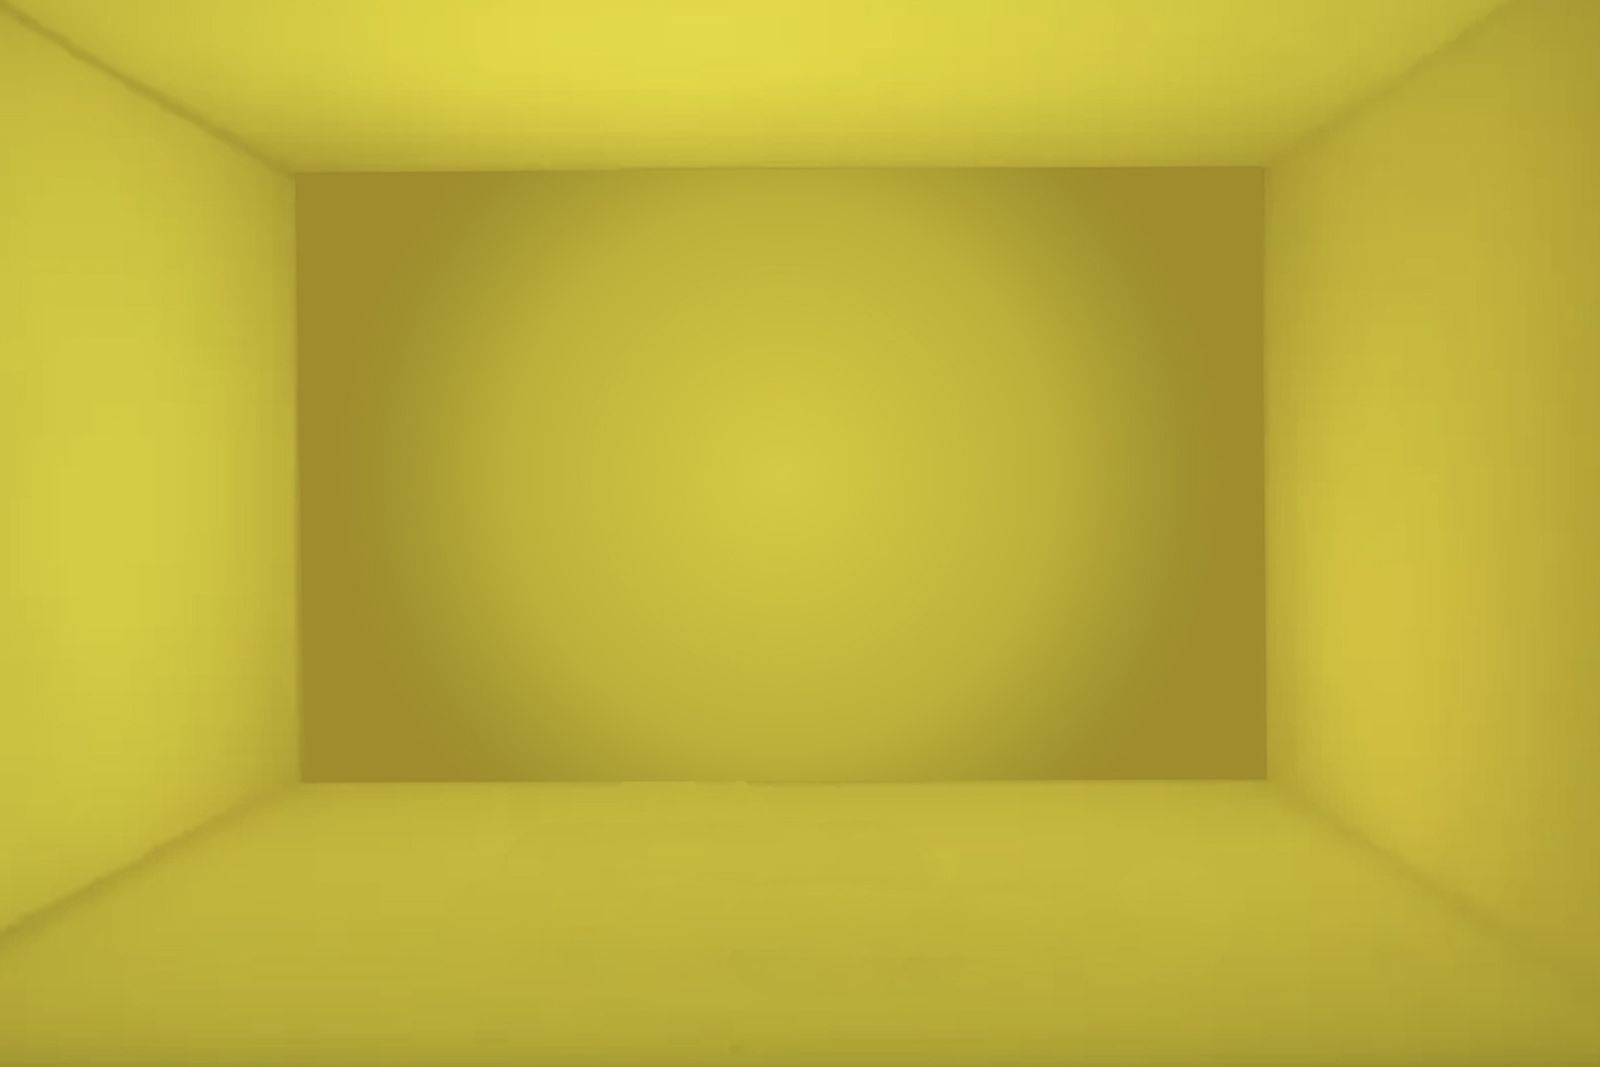 drake-zoom-backgrounds-04